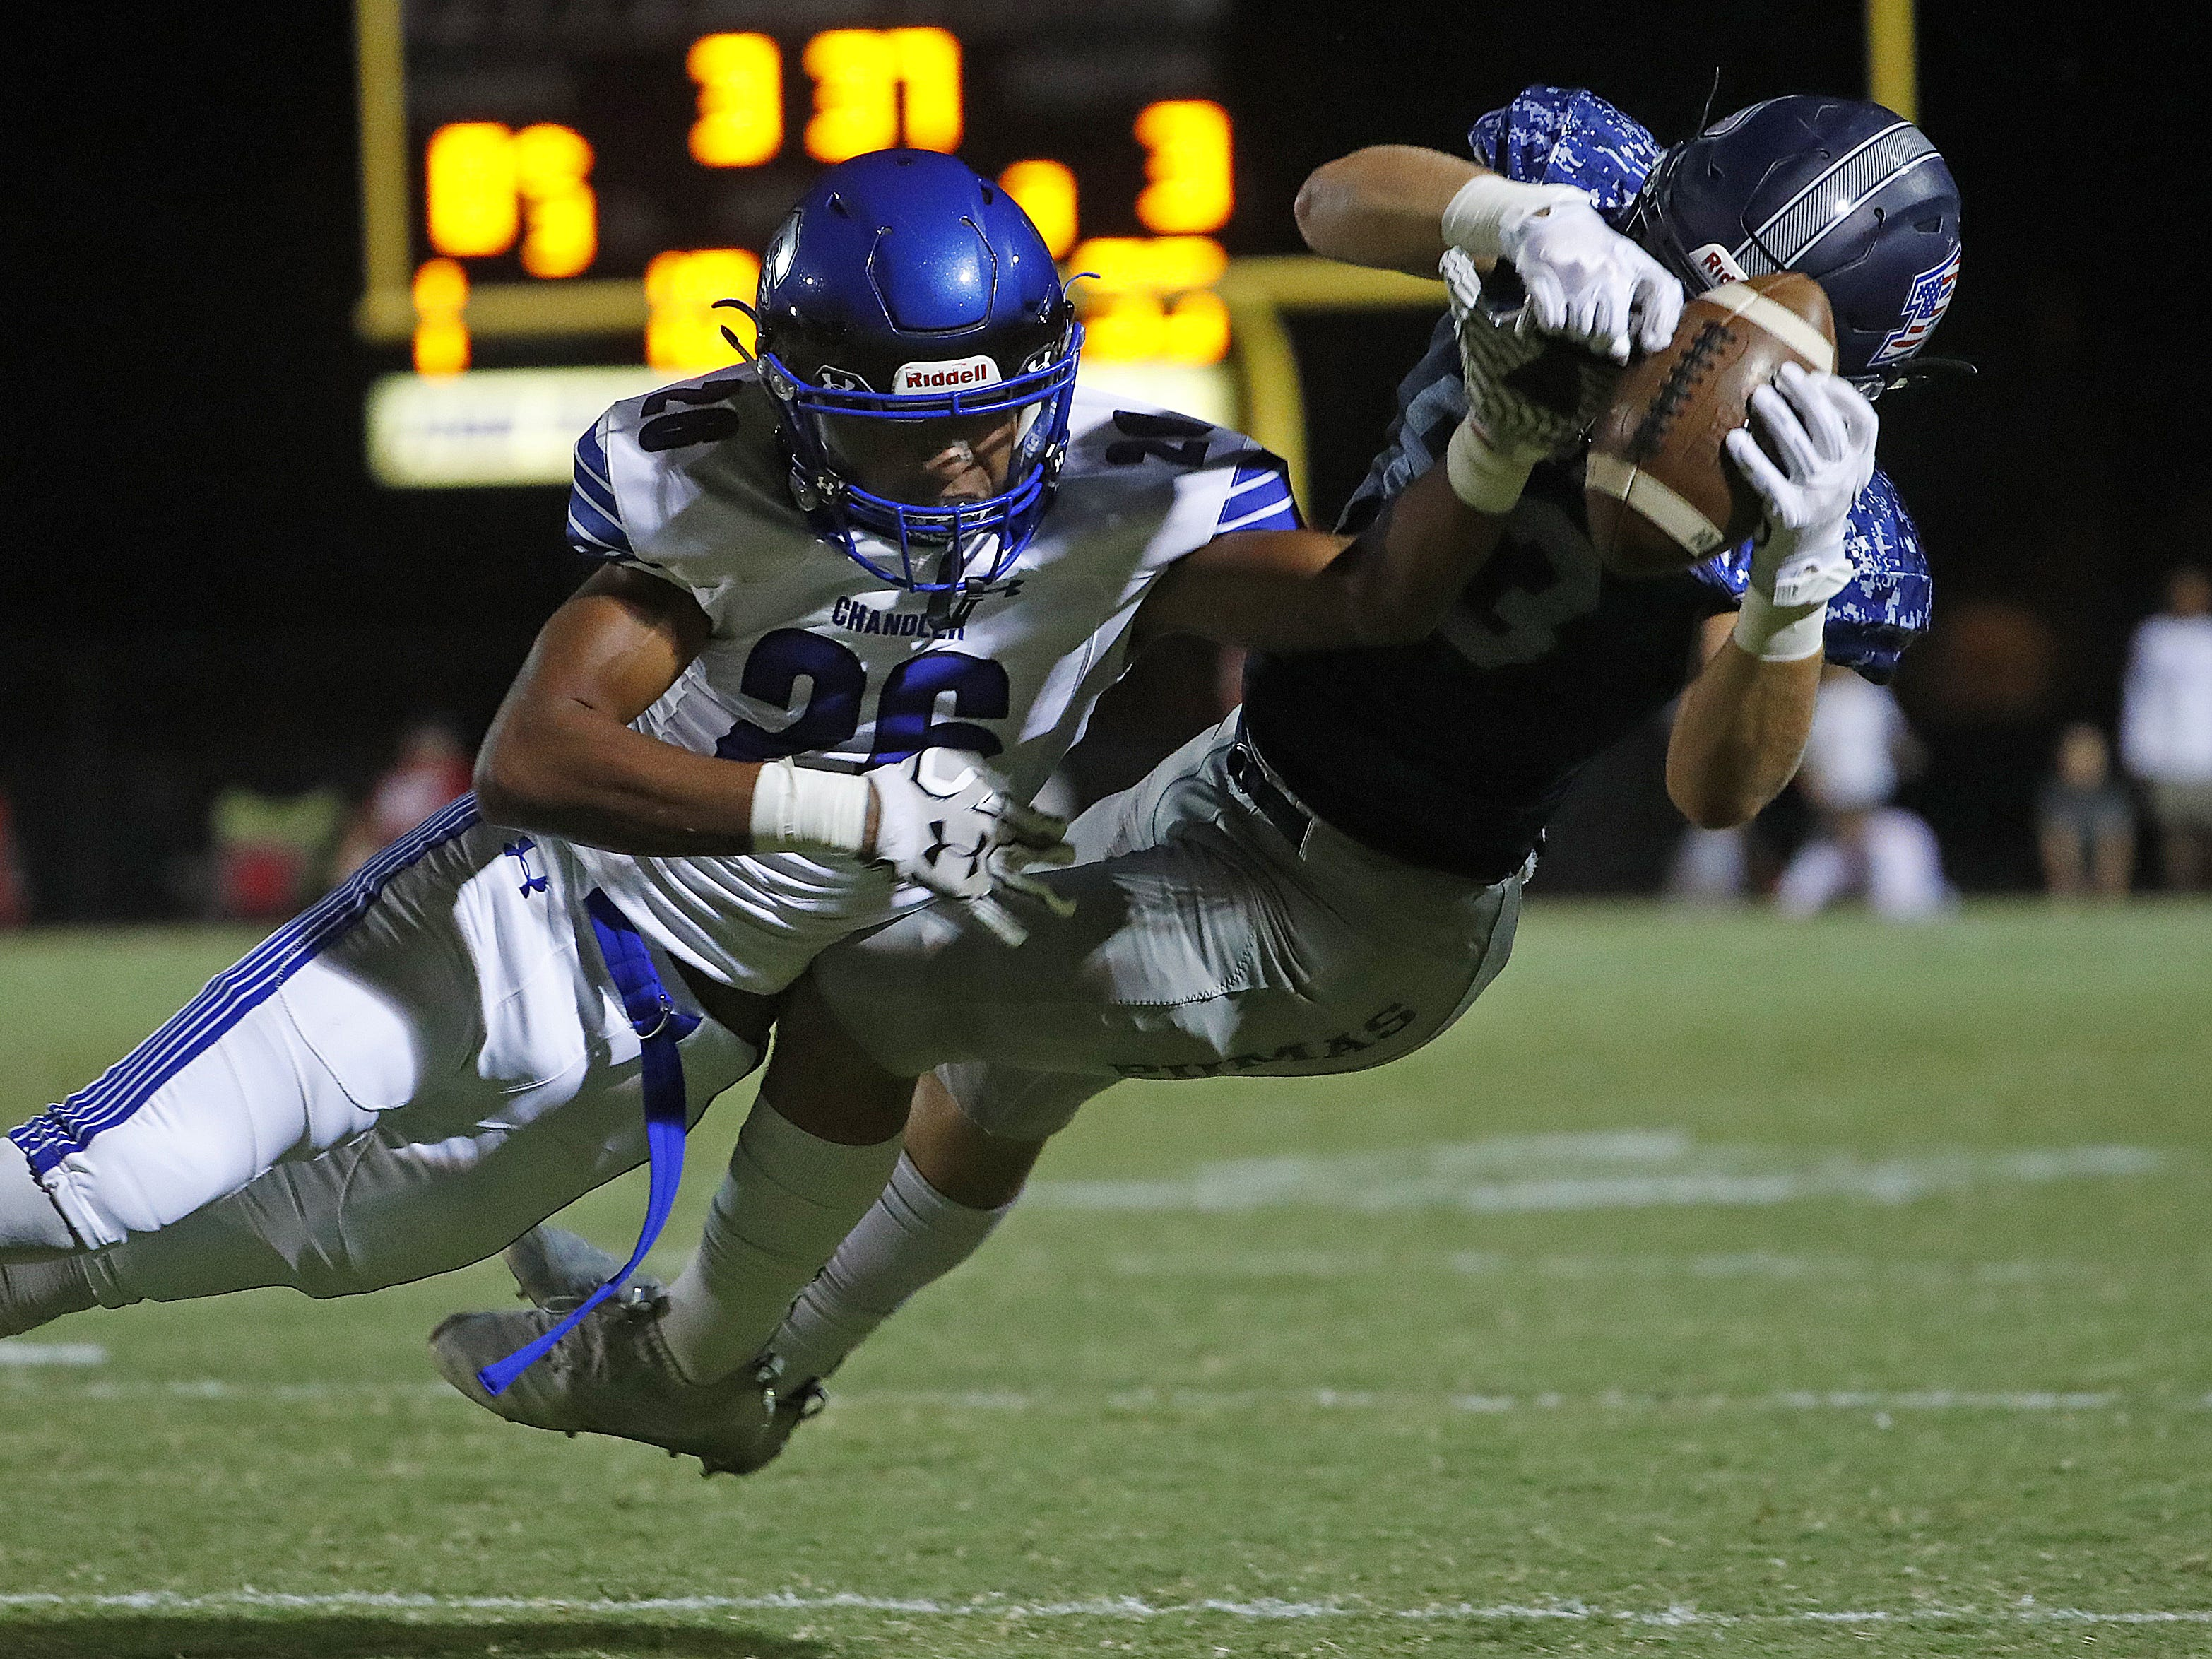 Chandler's Andrew Kirk (26) breaks up a pass intended for Perry's Connor Boyd (83) at Perry High School in Gilbert, Ariz. on Sept. 28, 2018.  #azhsfb